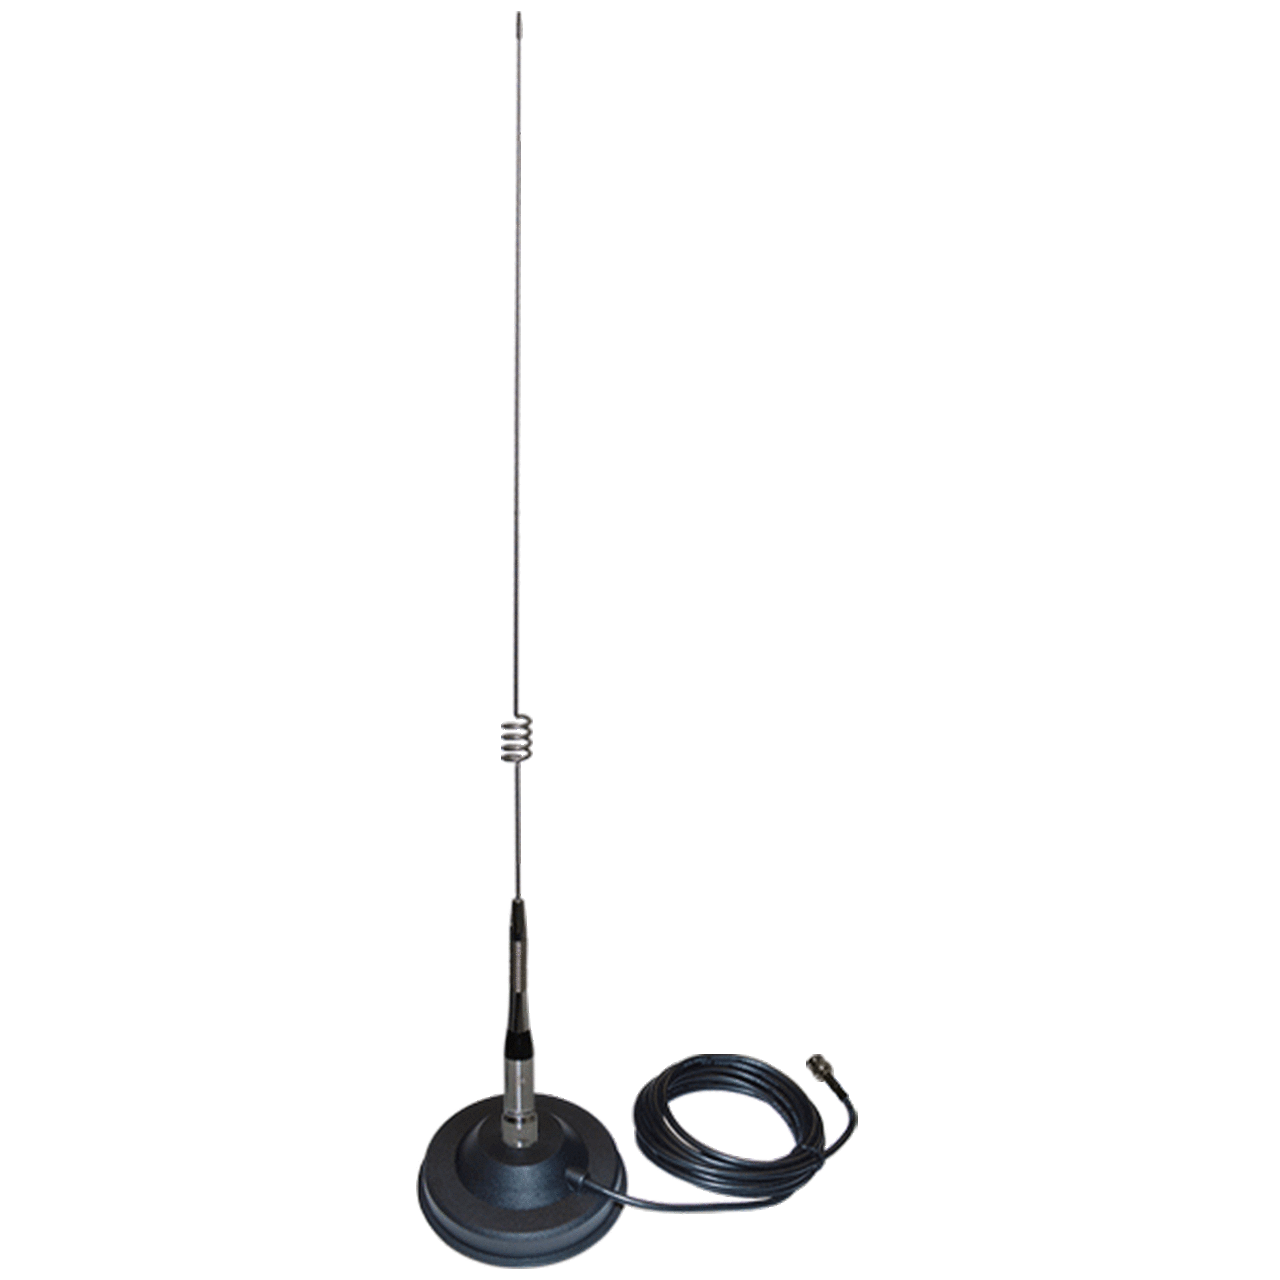 Magnetic Mount Antenna with Cable for Digital Mobile UHF Radio